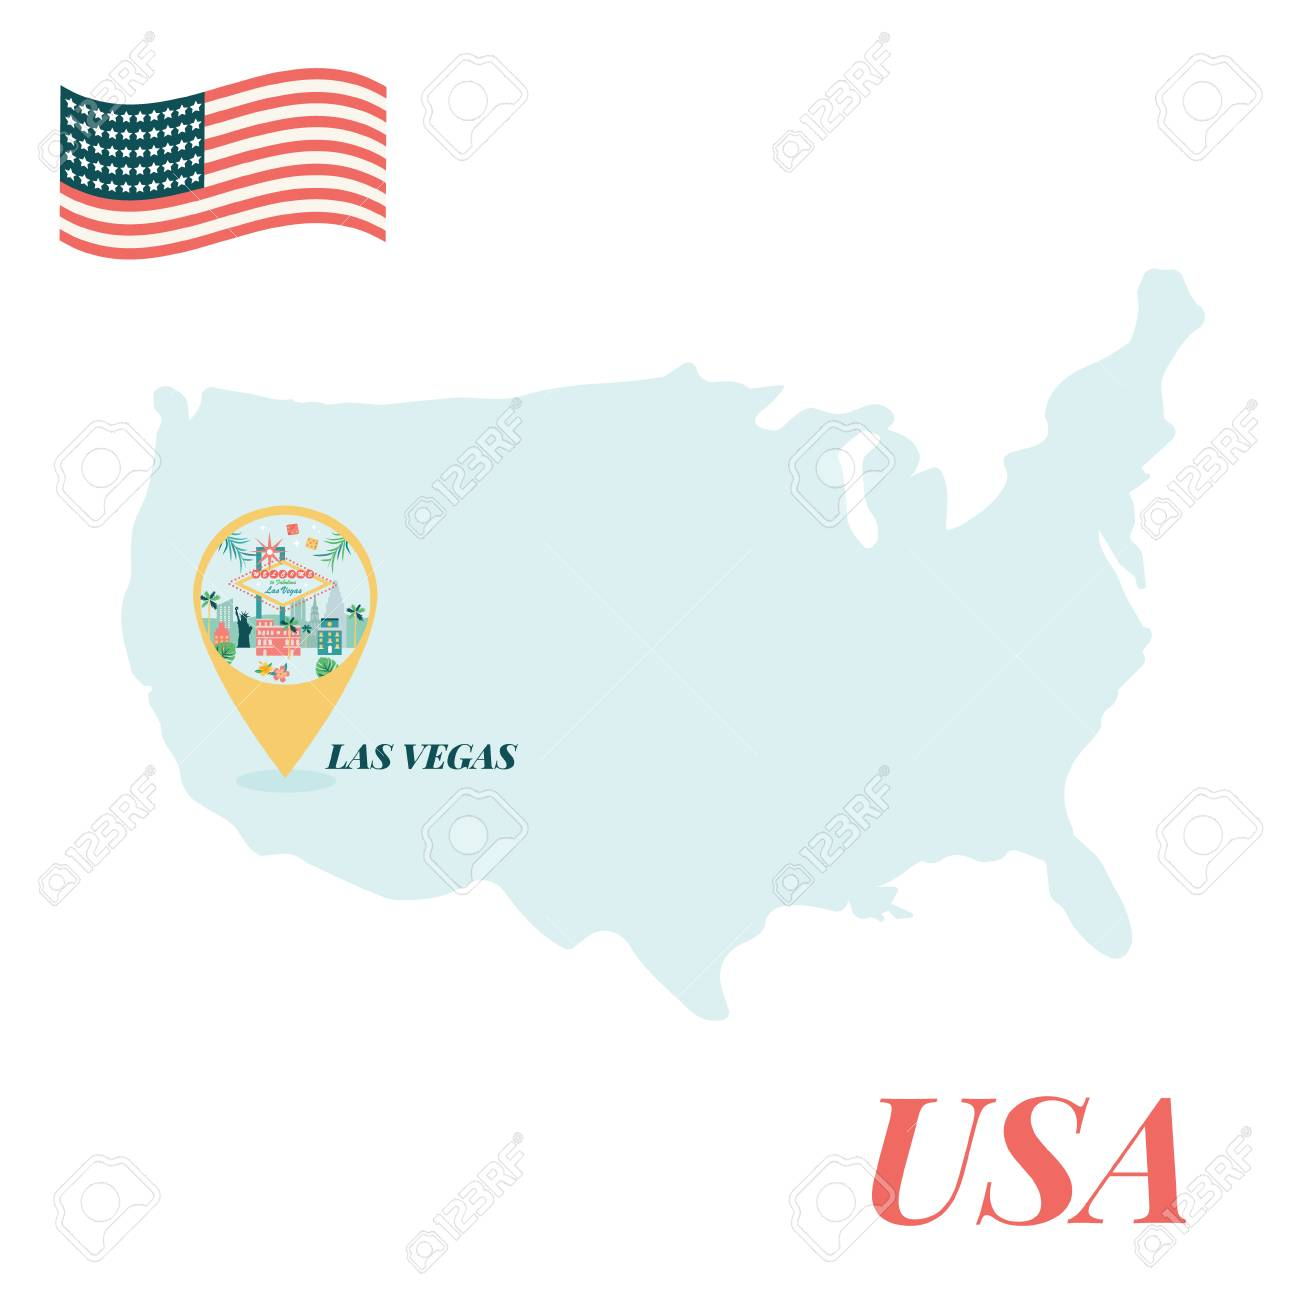 USA map with Las Vegas pin travel concept.